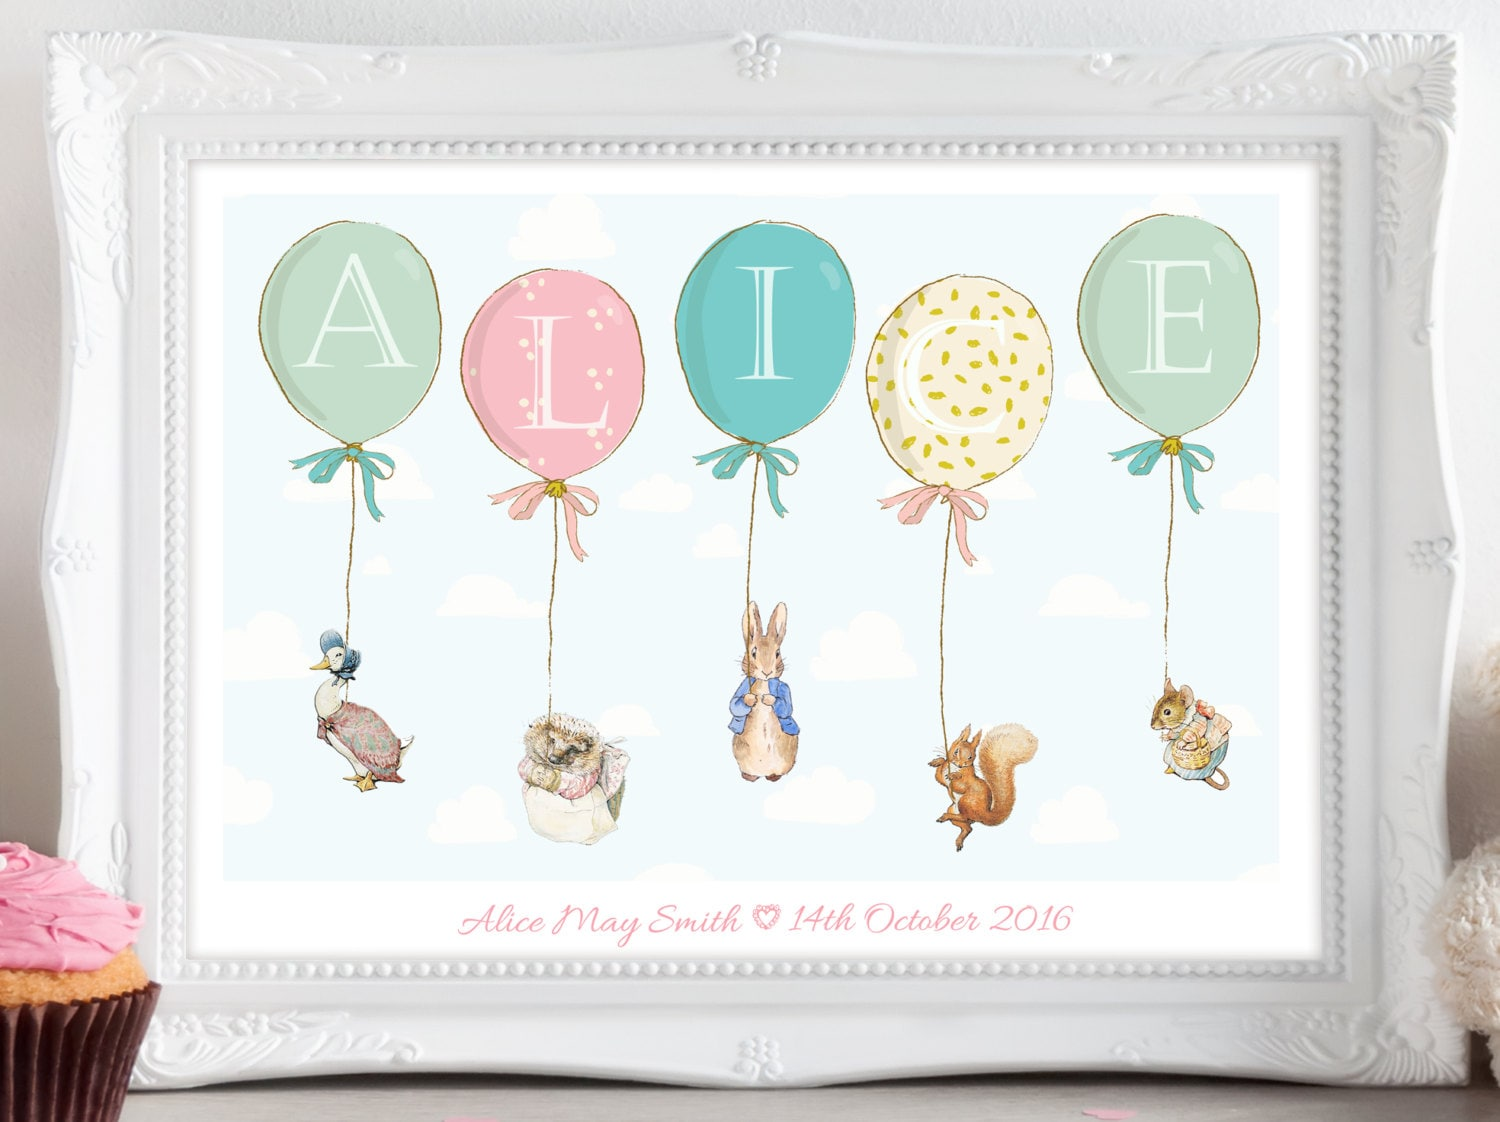 personalised peter rabbit beatrix potter balloon print picture